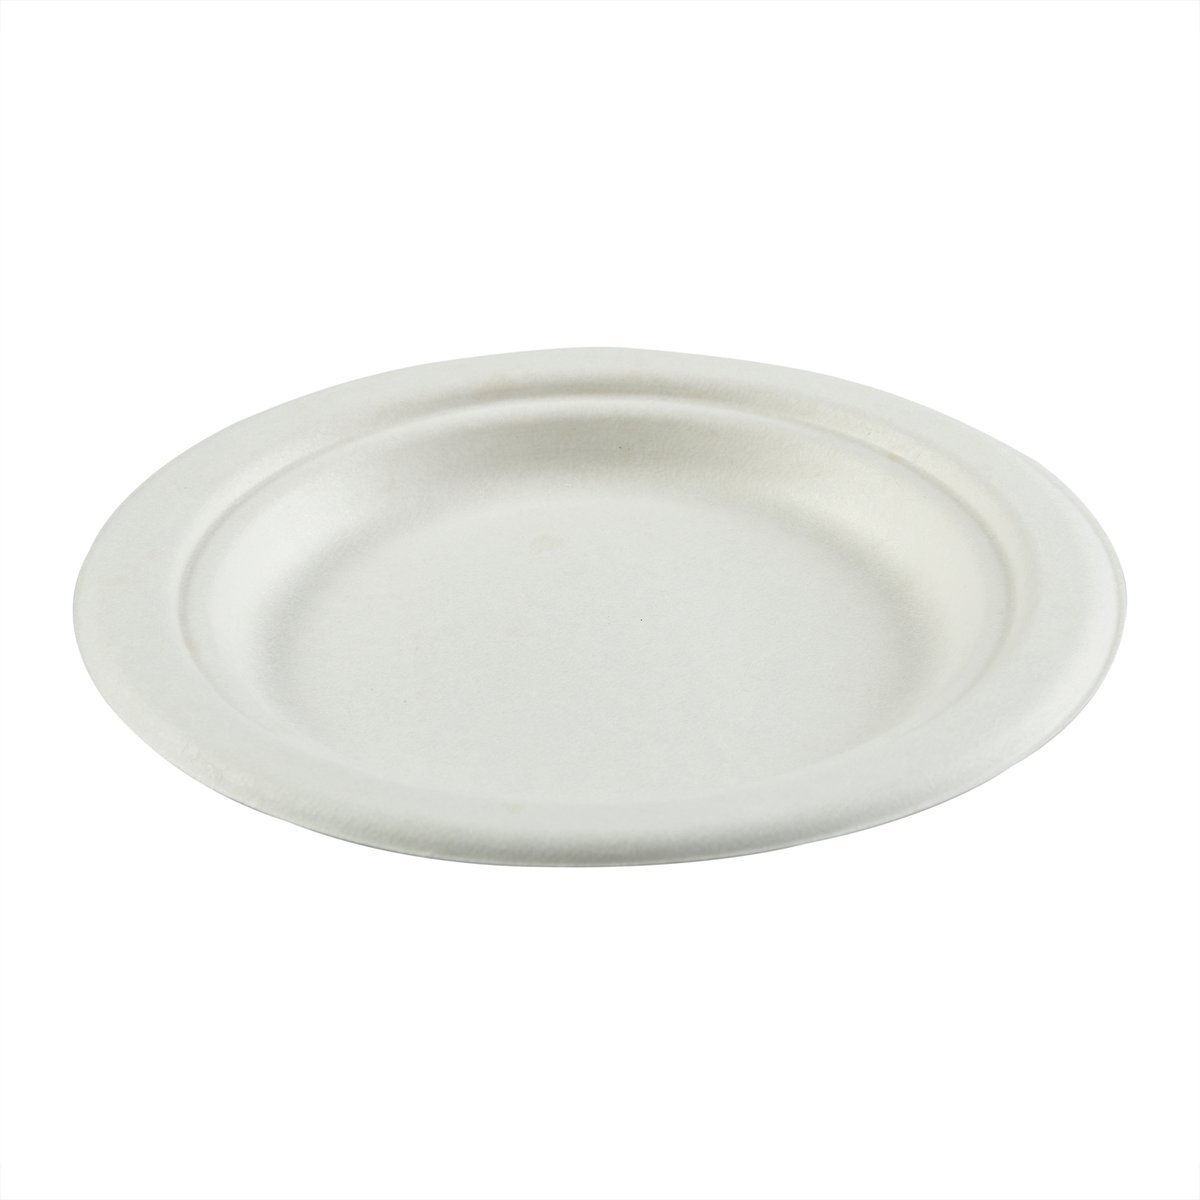 6in Round Plate